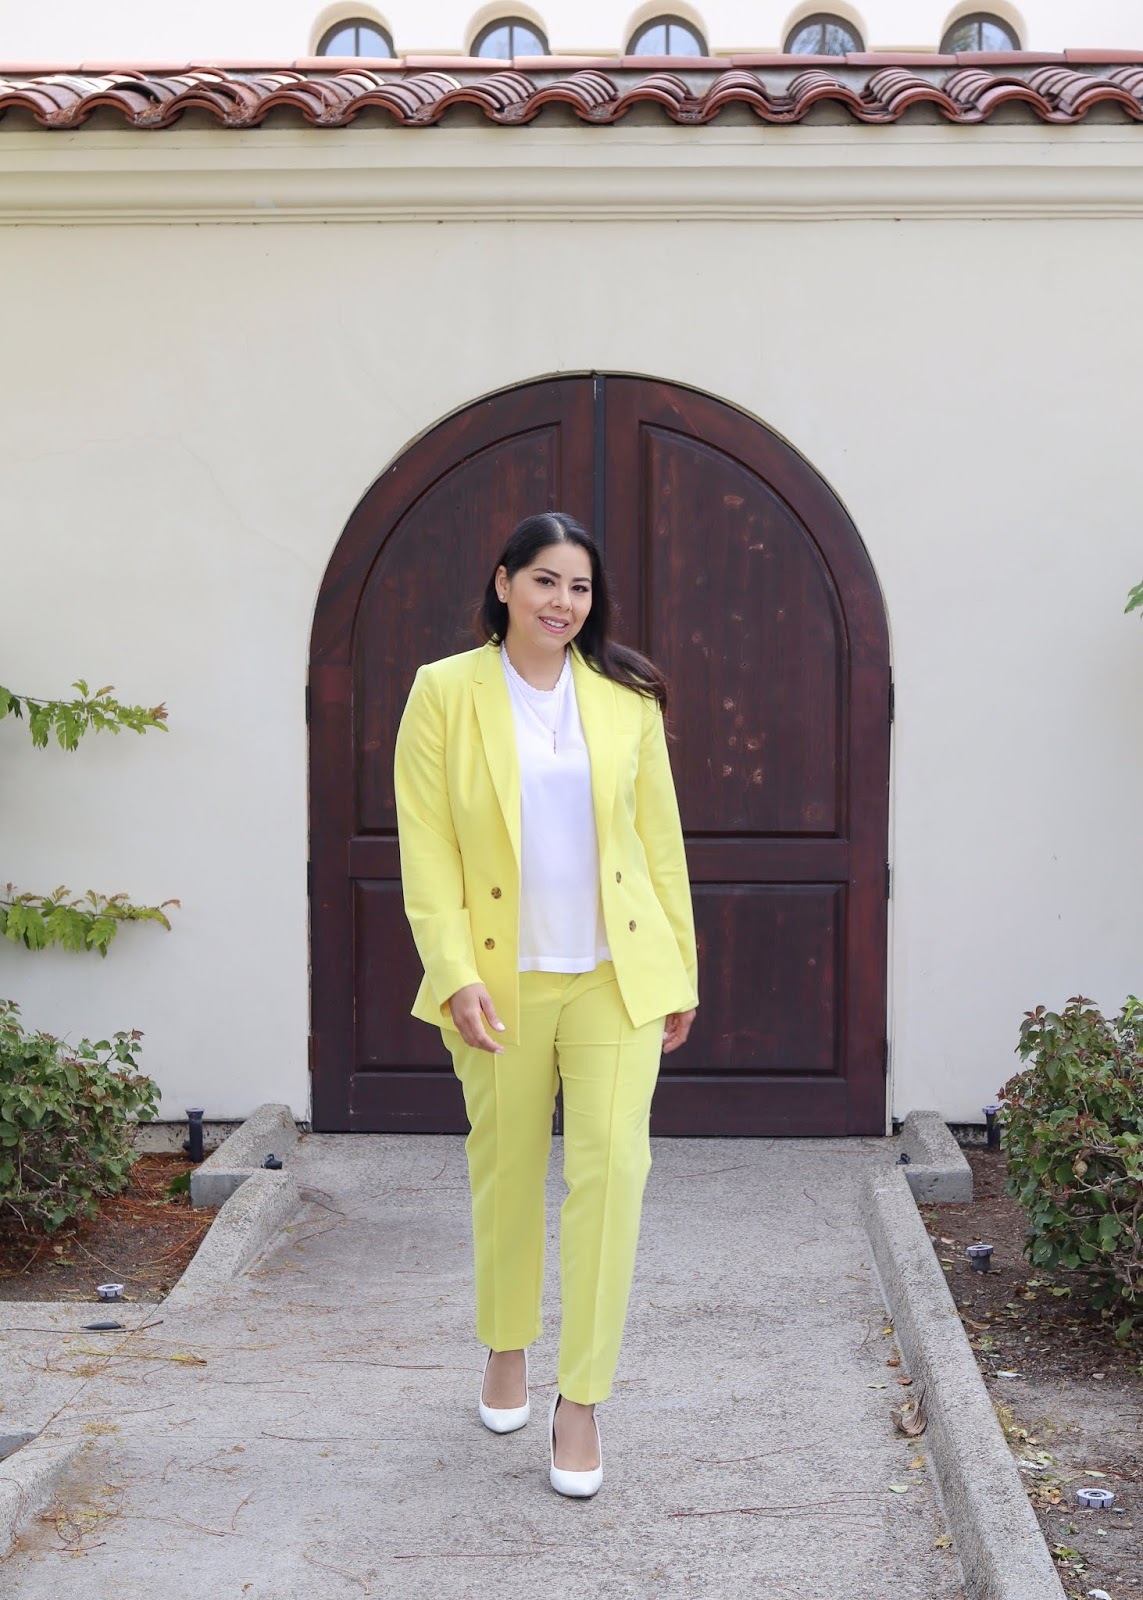 how to wear a yellow suit, yellow spring suit, yellow outfit